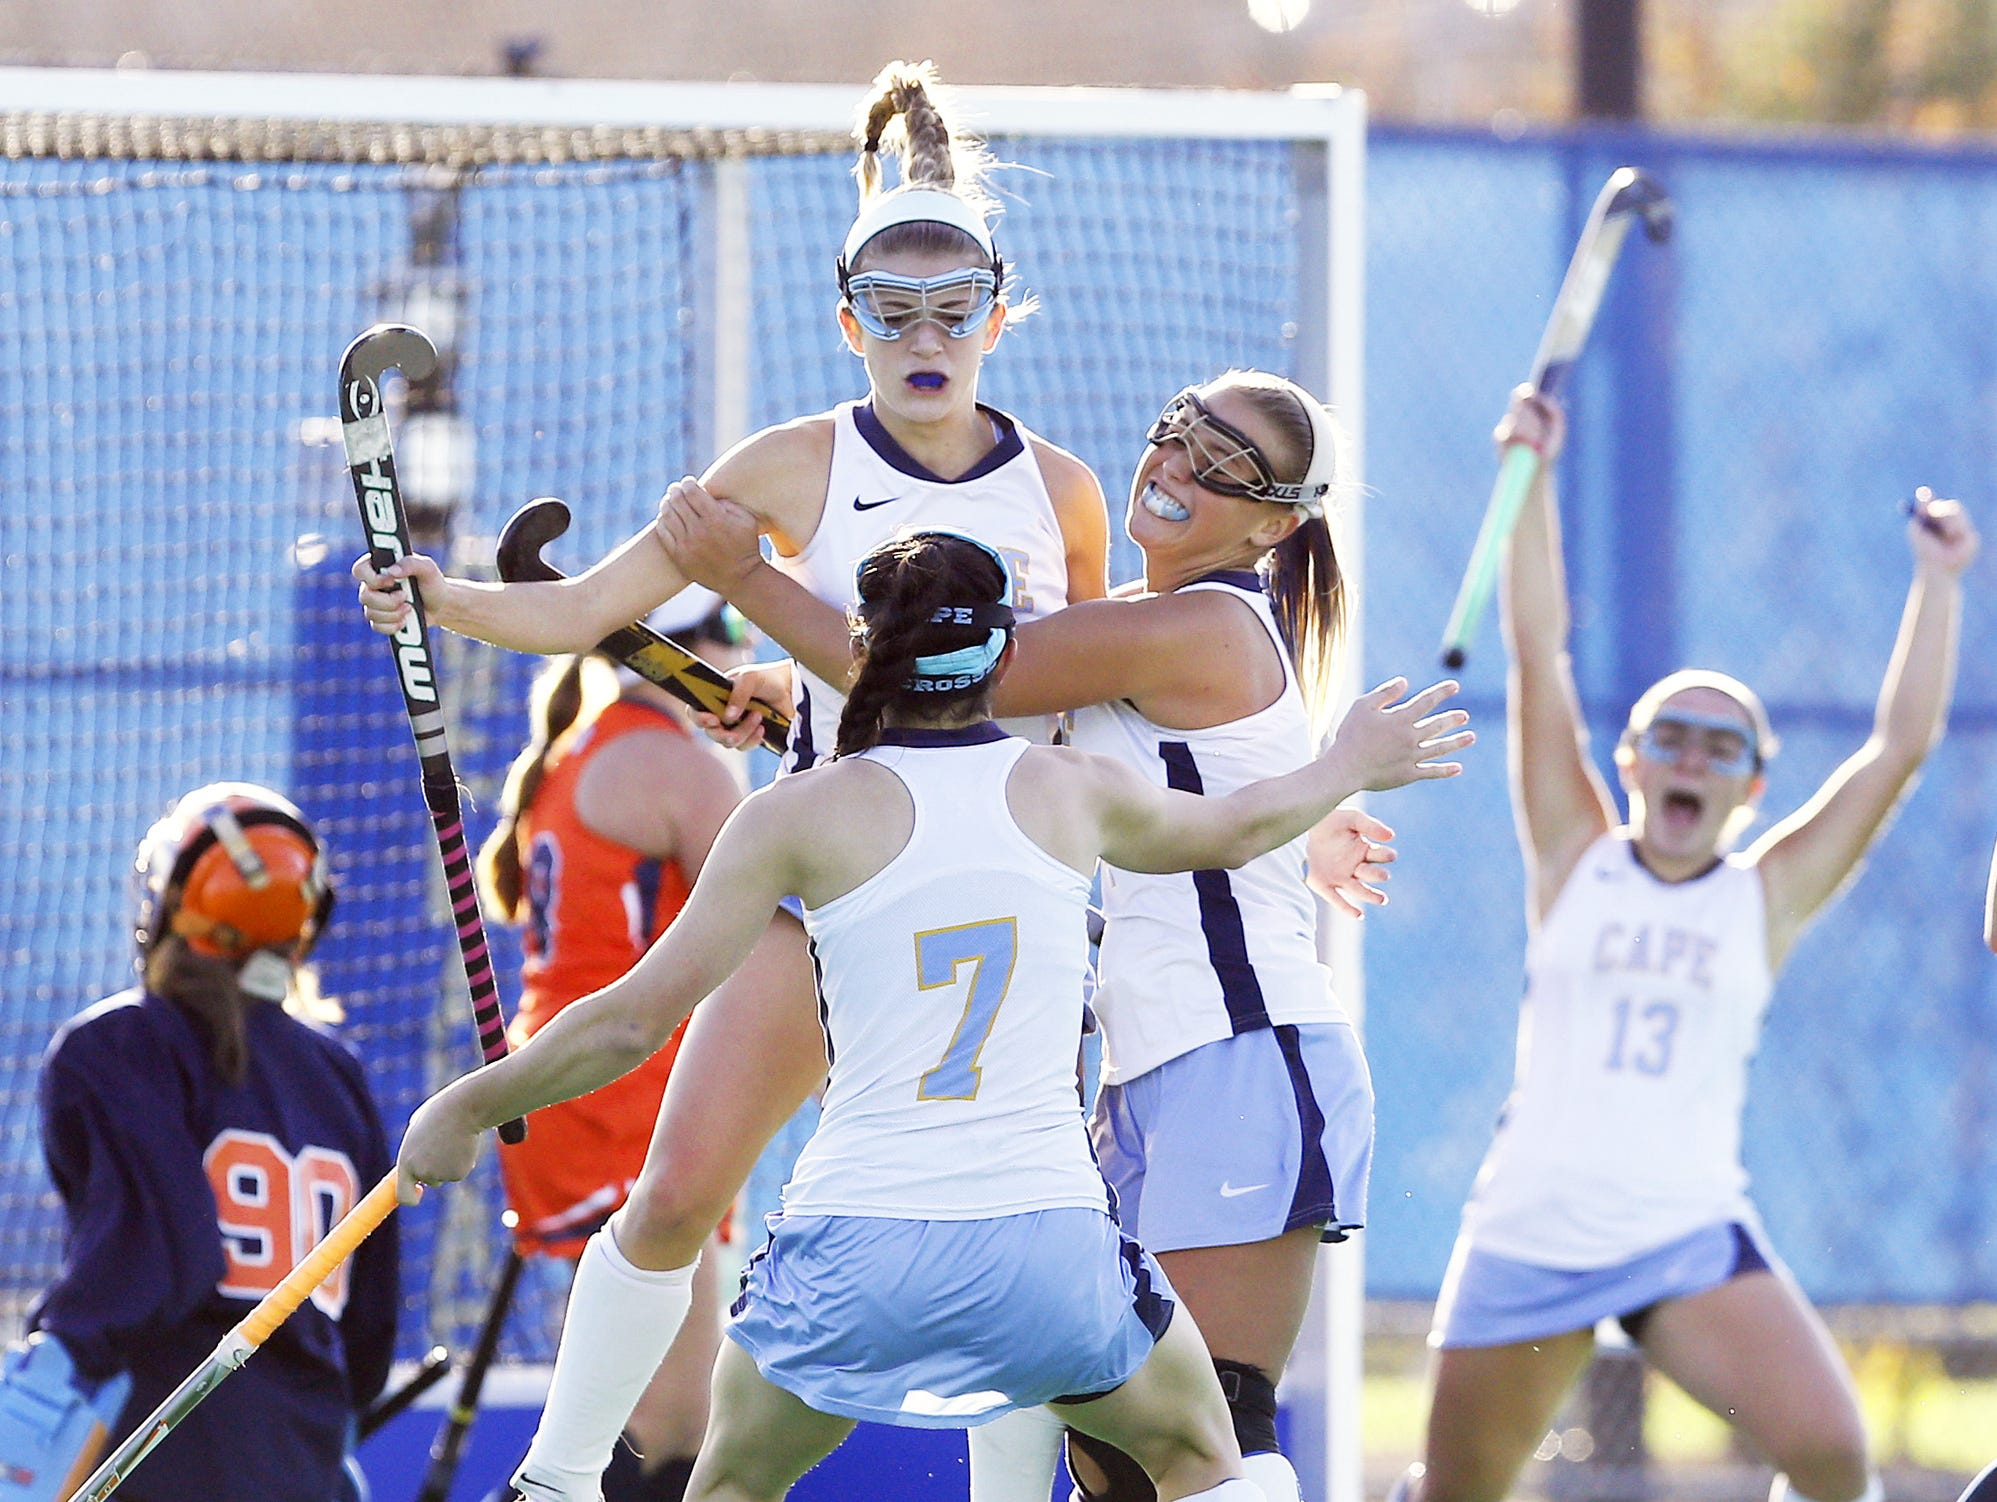 Cape Henlopen's Alia Marshall (top) celebrates her go-ahead score with Tess Bernheimer (7), Sydney Ostroski and Catherine Frederick (13) in the second half of Cape's 3-1 win in the DIAA state title game Saturday at Rullo Stadium.